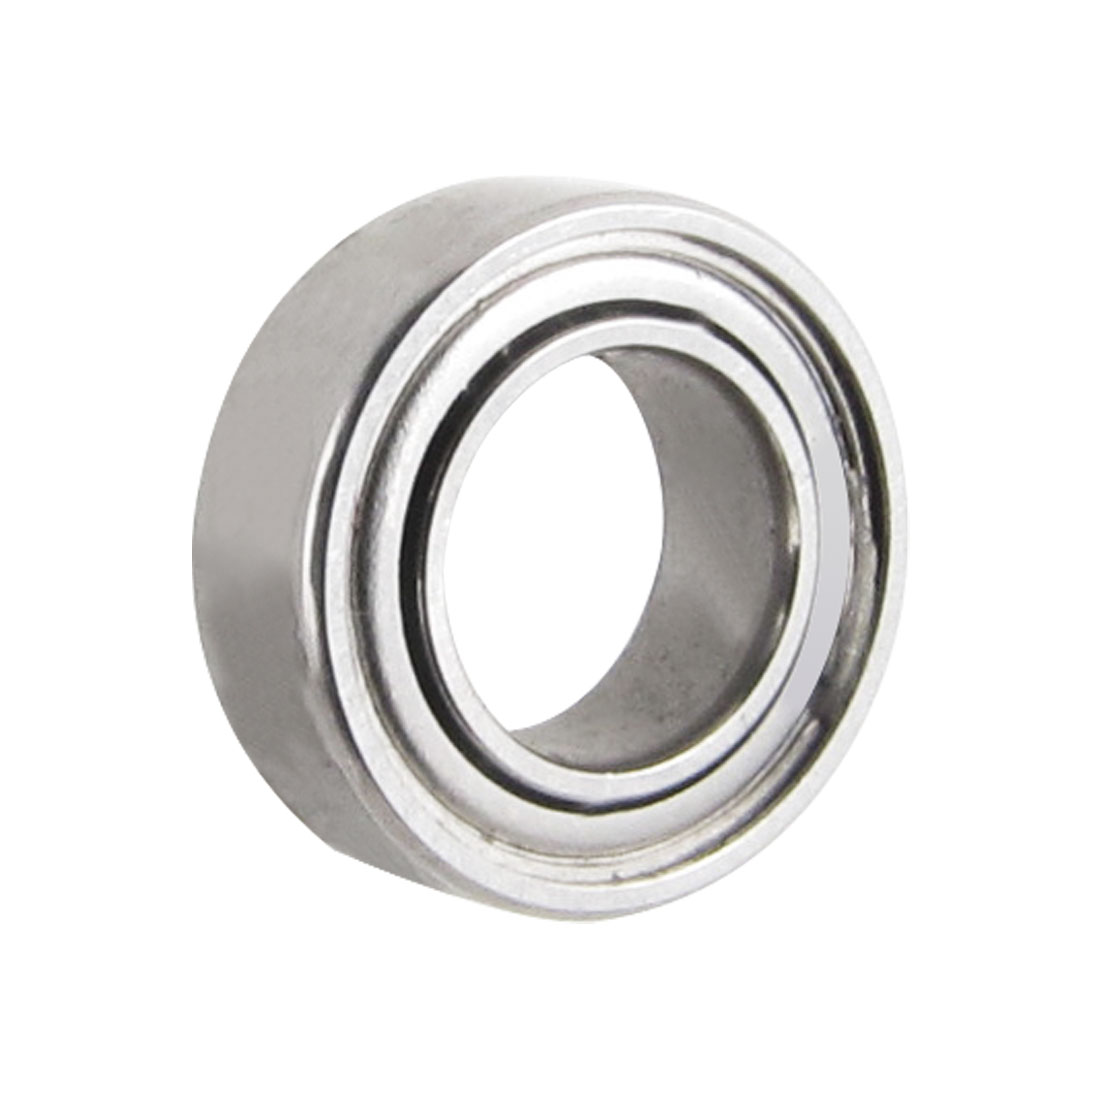 9mm x 5mm x 3mm Silver Tone Sealed Deep Groove Roller Bearings